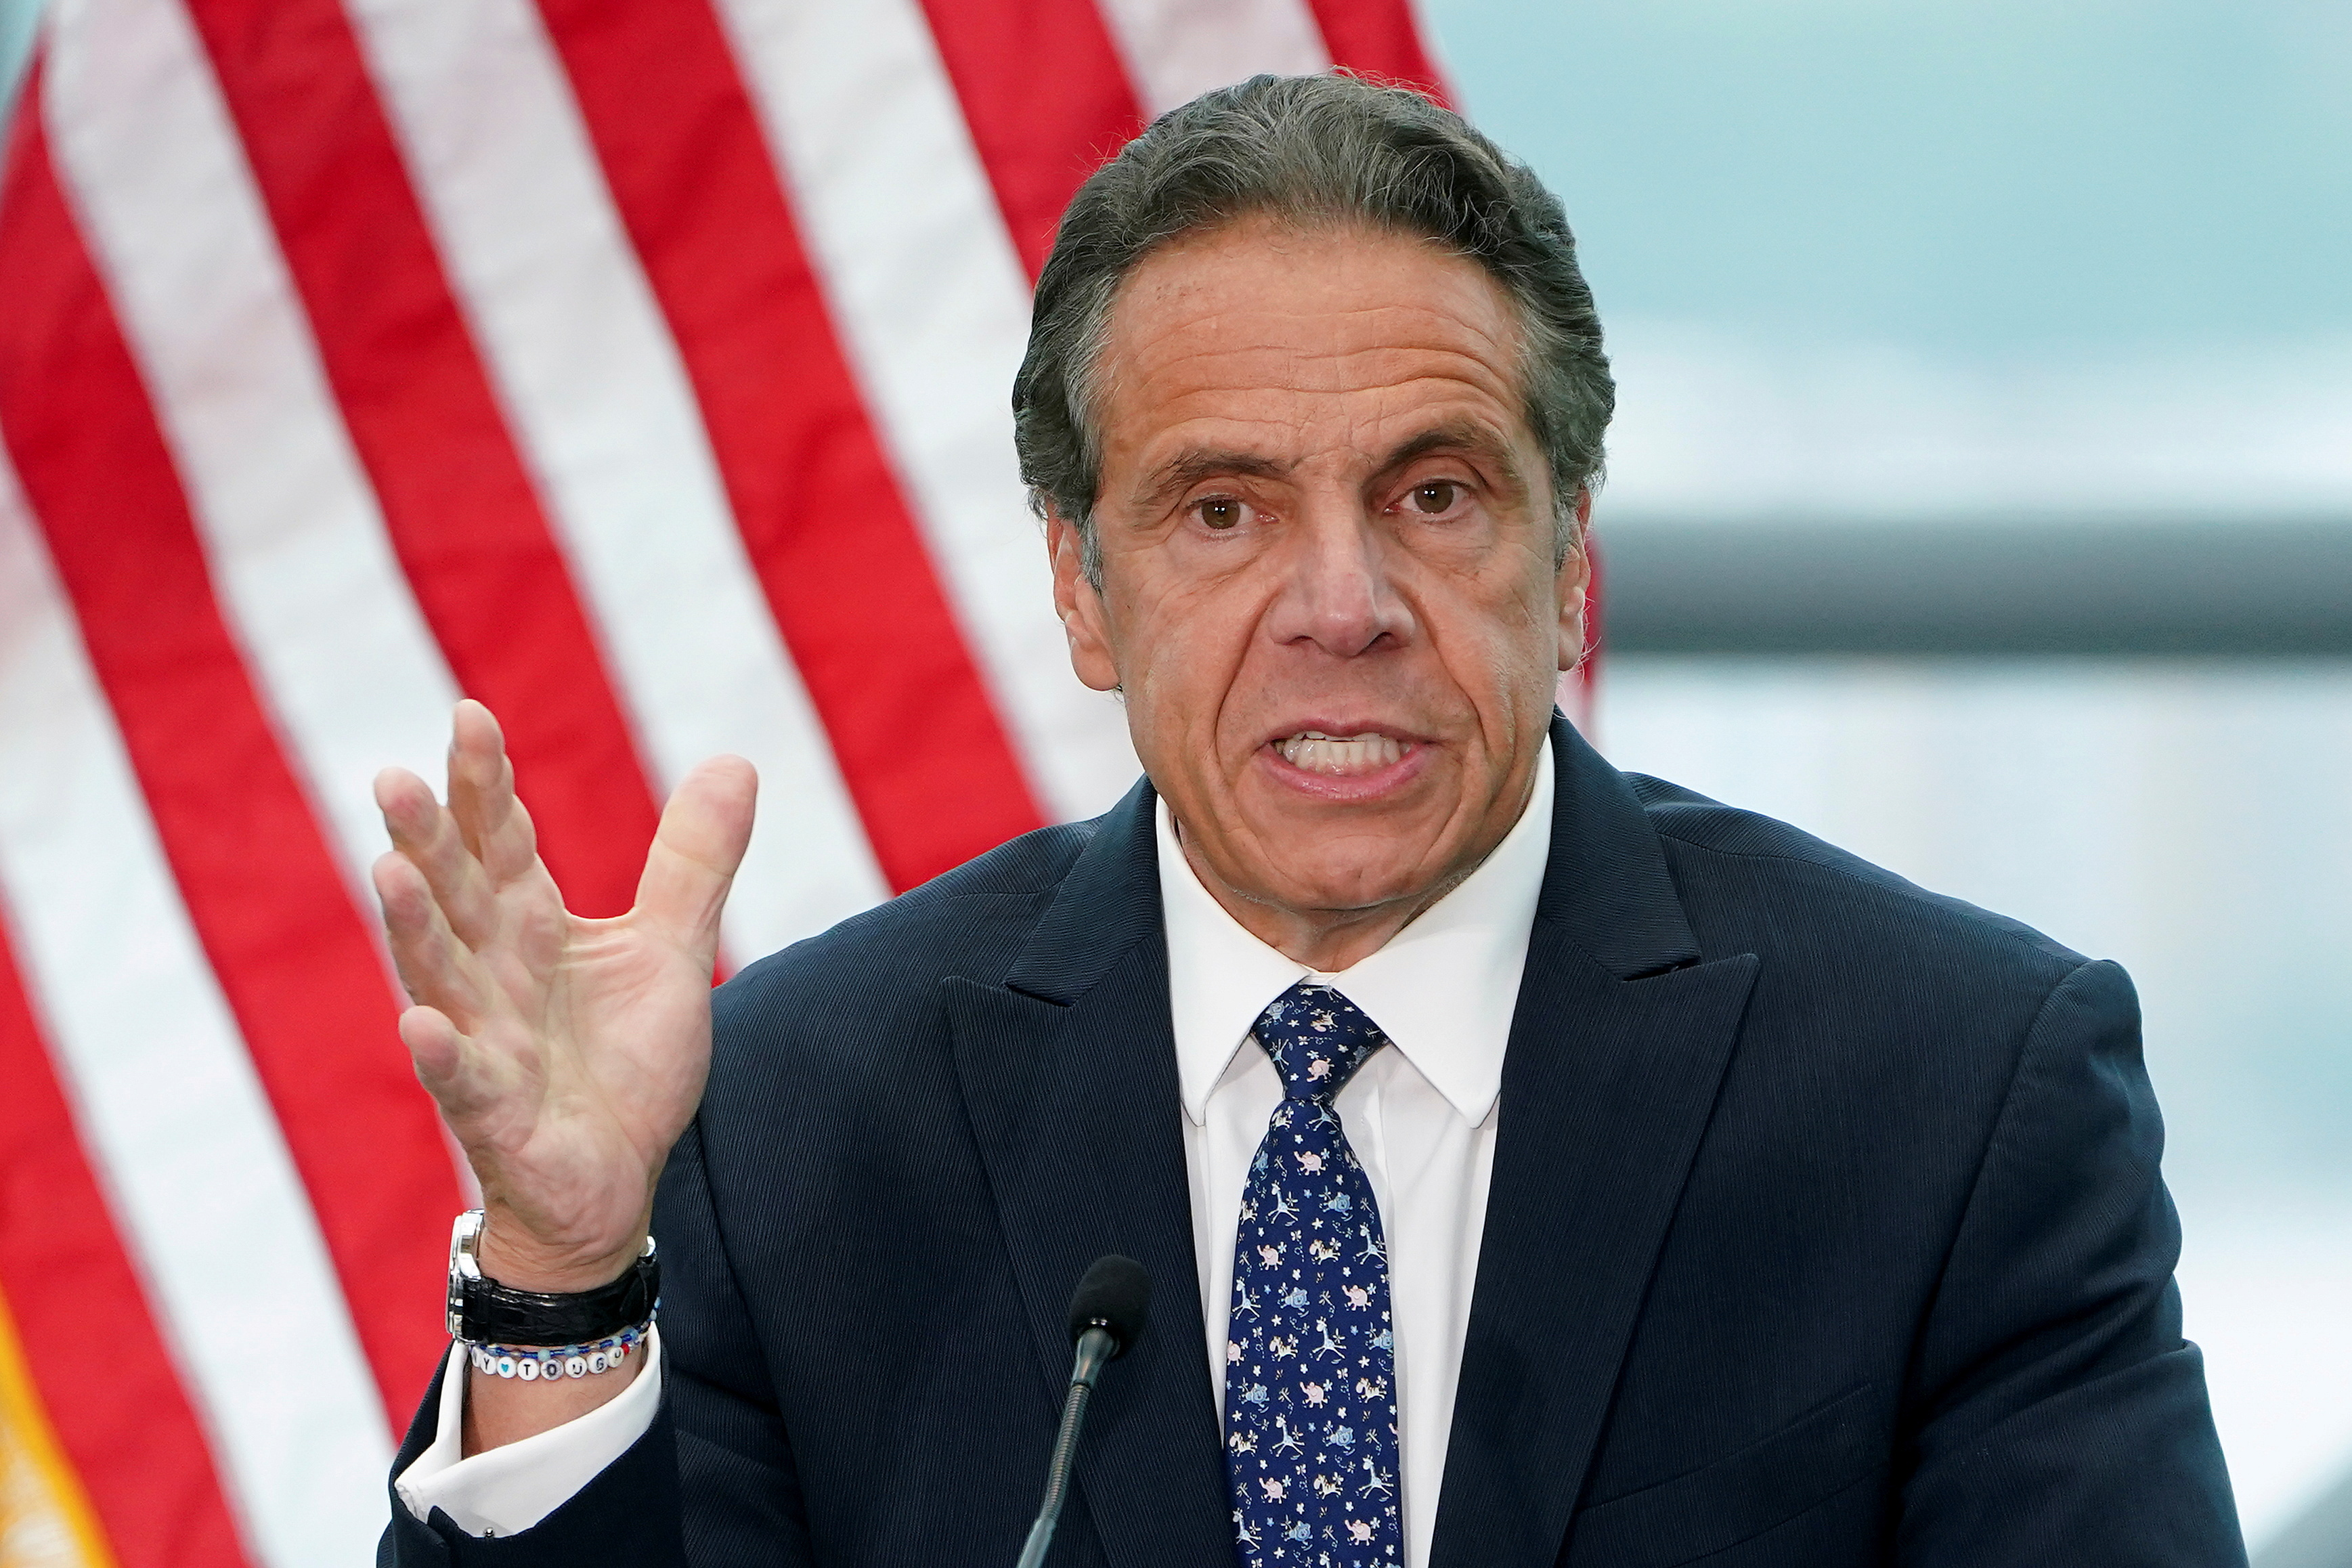 New York Governor Andrew Cuomo gives a press conference in the Manhattan borough of New York City, New York, U.S., June 2, 2021.  REUTERS/Carlo Allegri